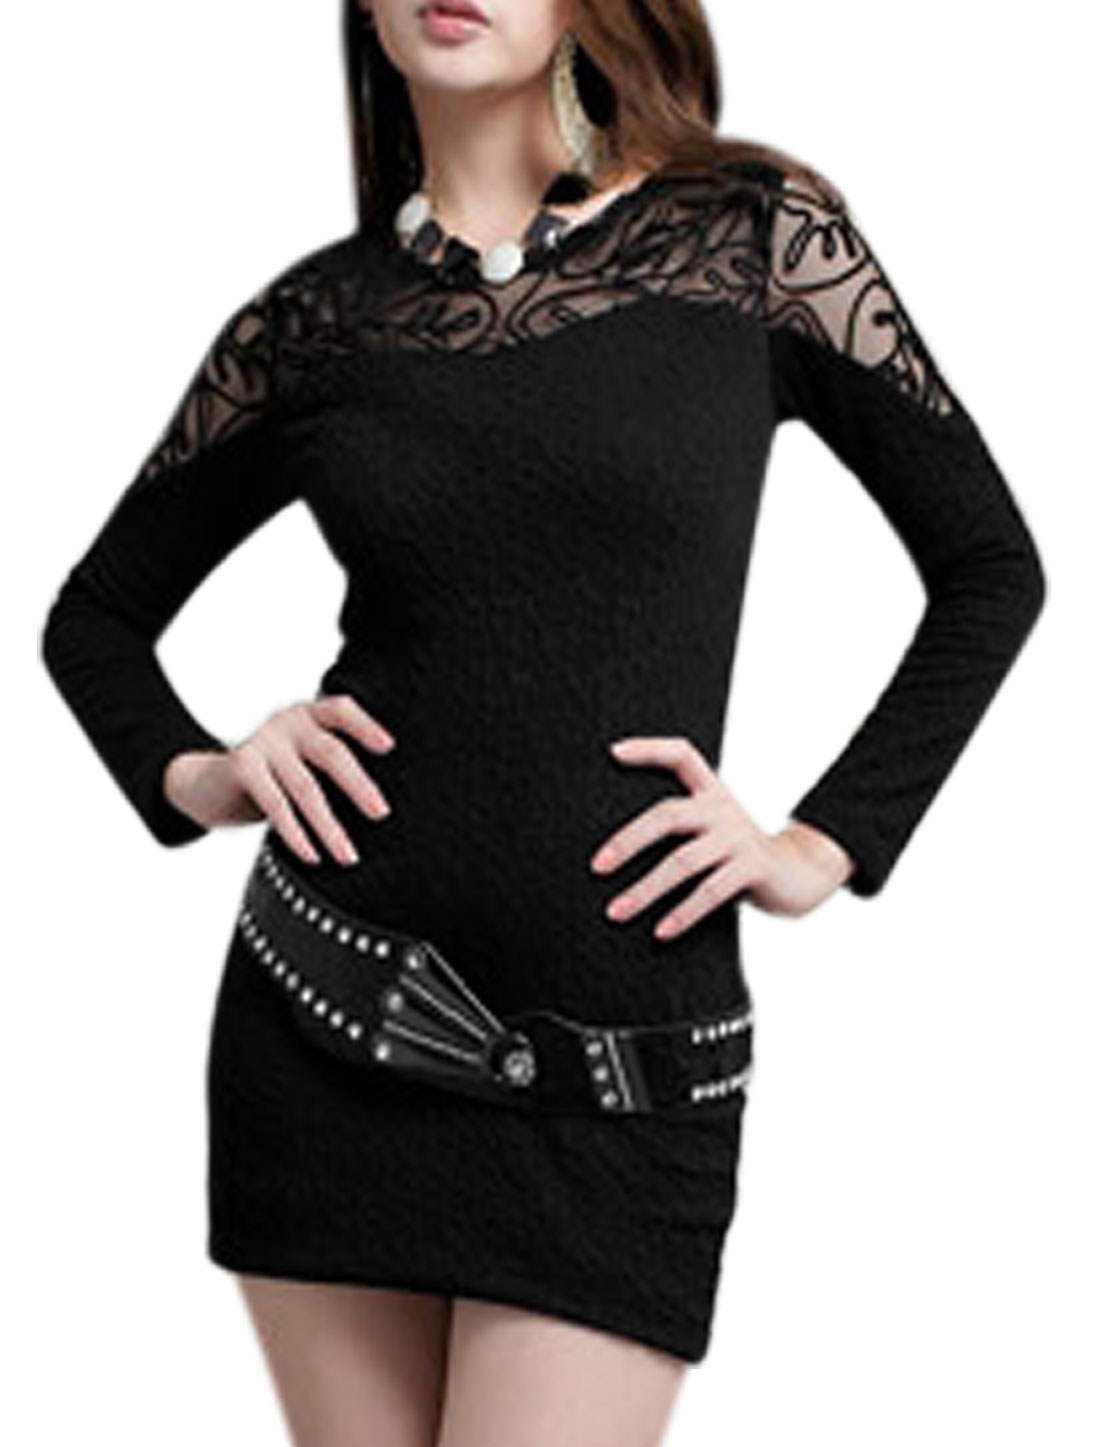 Lady Mesh Panel Semi Sheer Long Sleeve Sexy Stretch Dress Black M